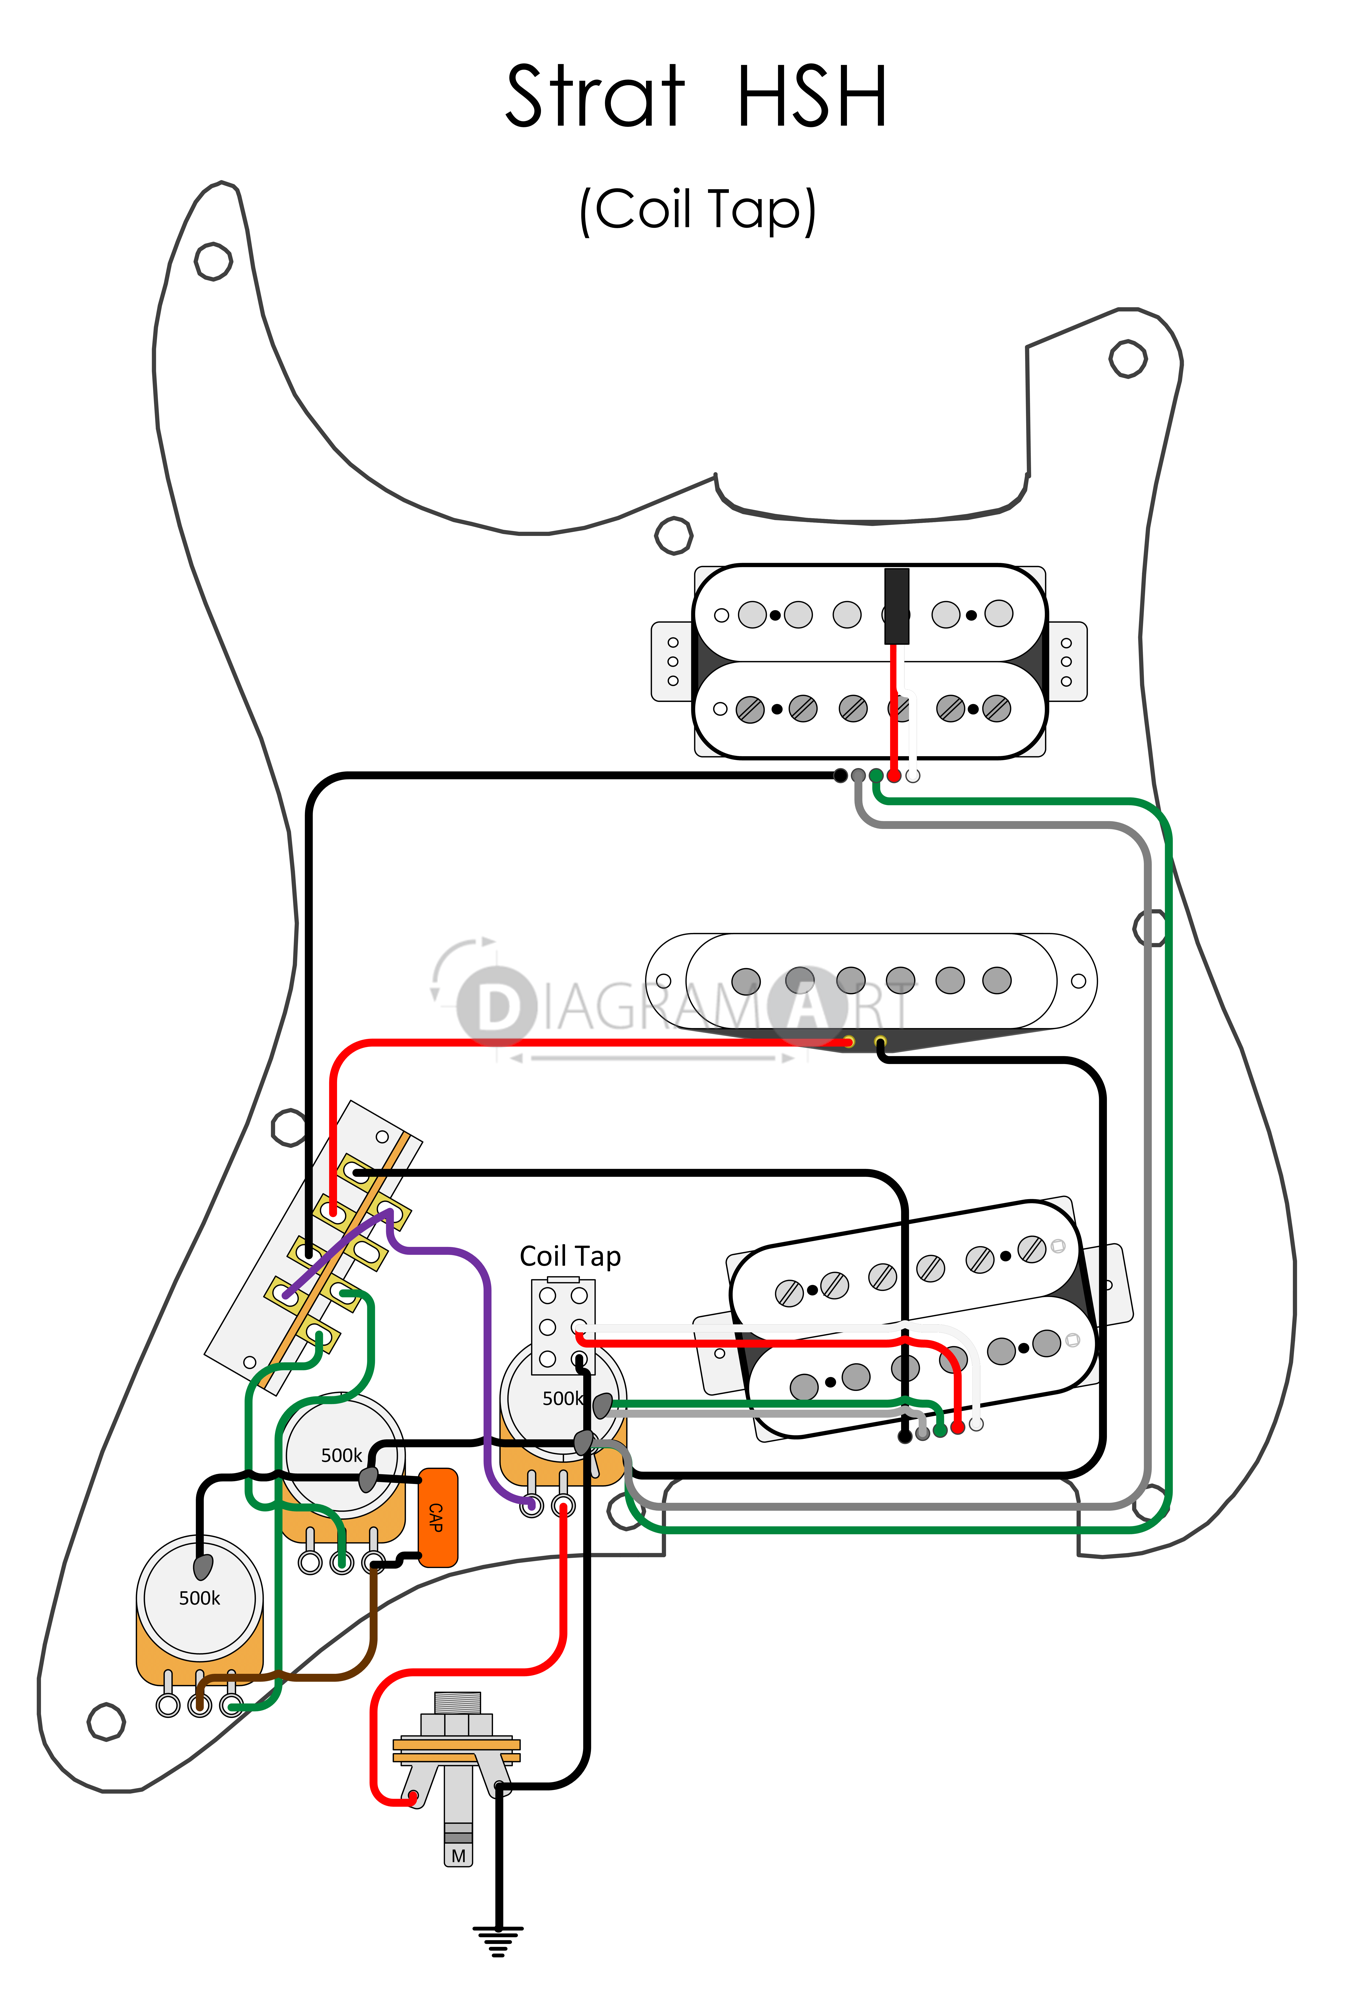 Hhh Guitar Wiring Diagram Browse Data Jack Library Rotory Switch Electric Hsh